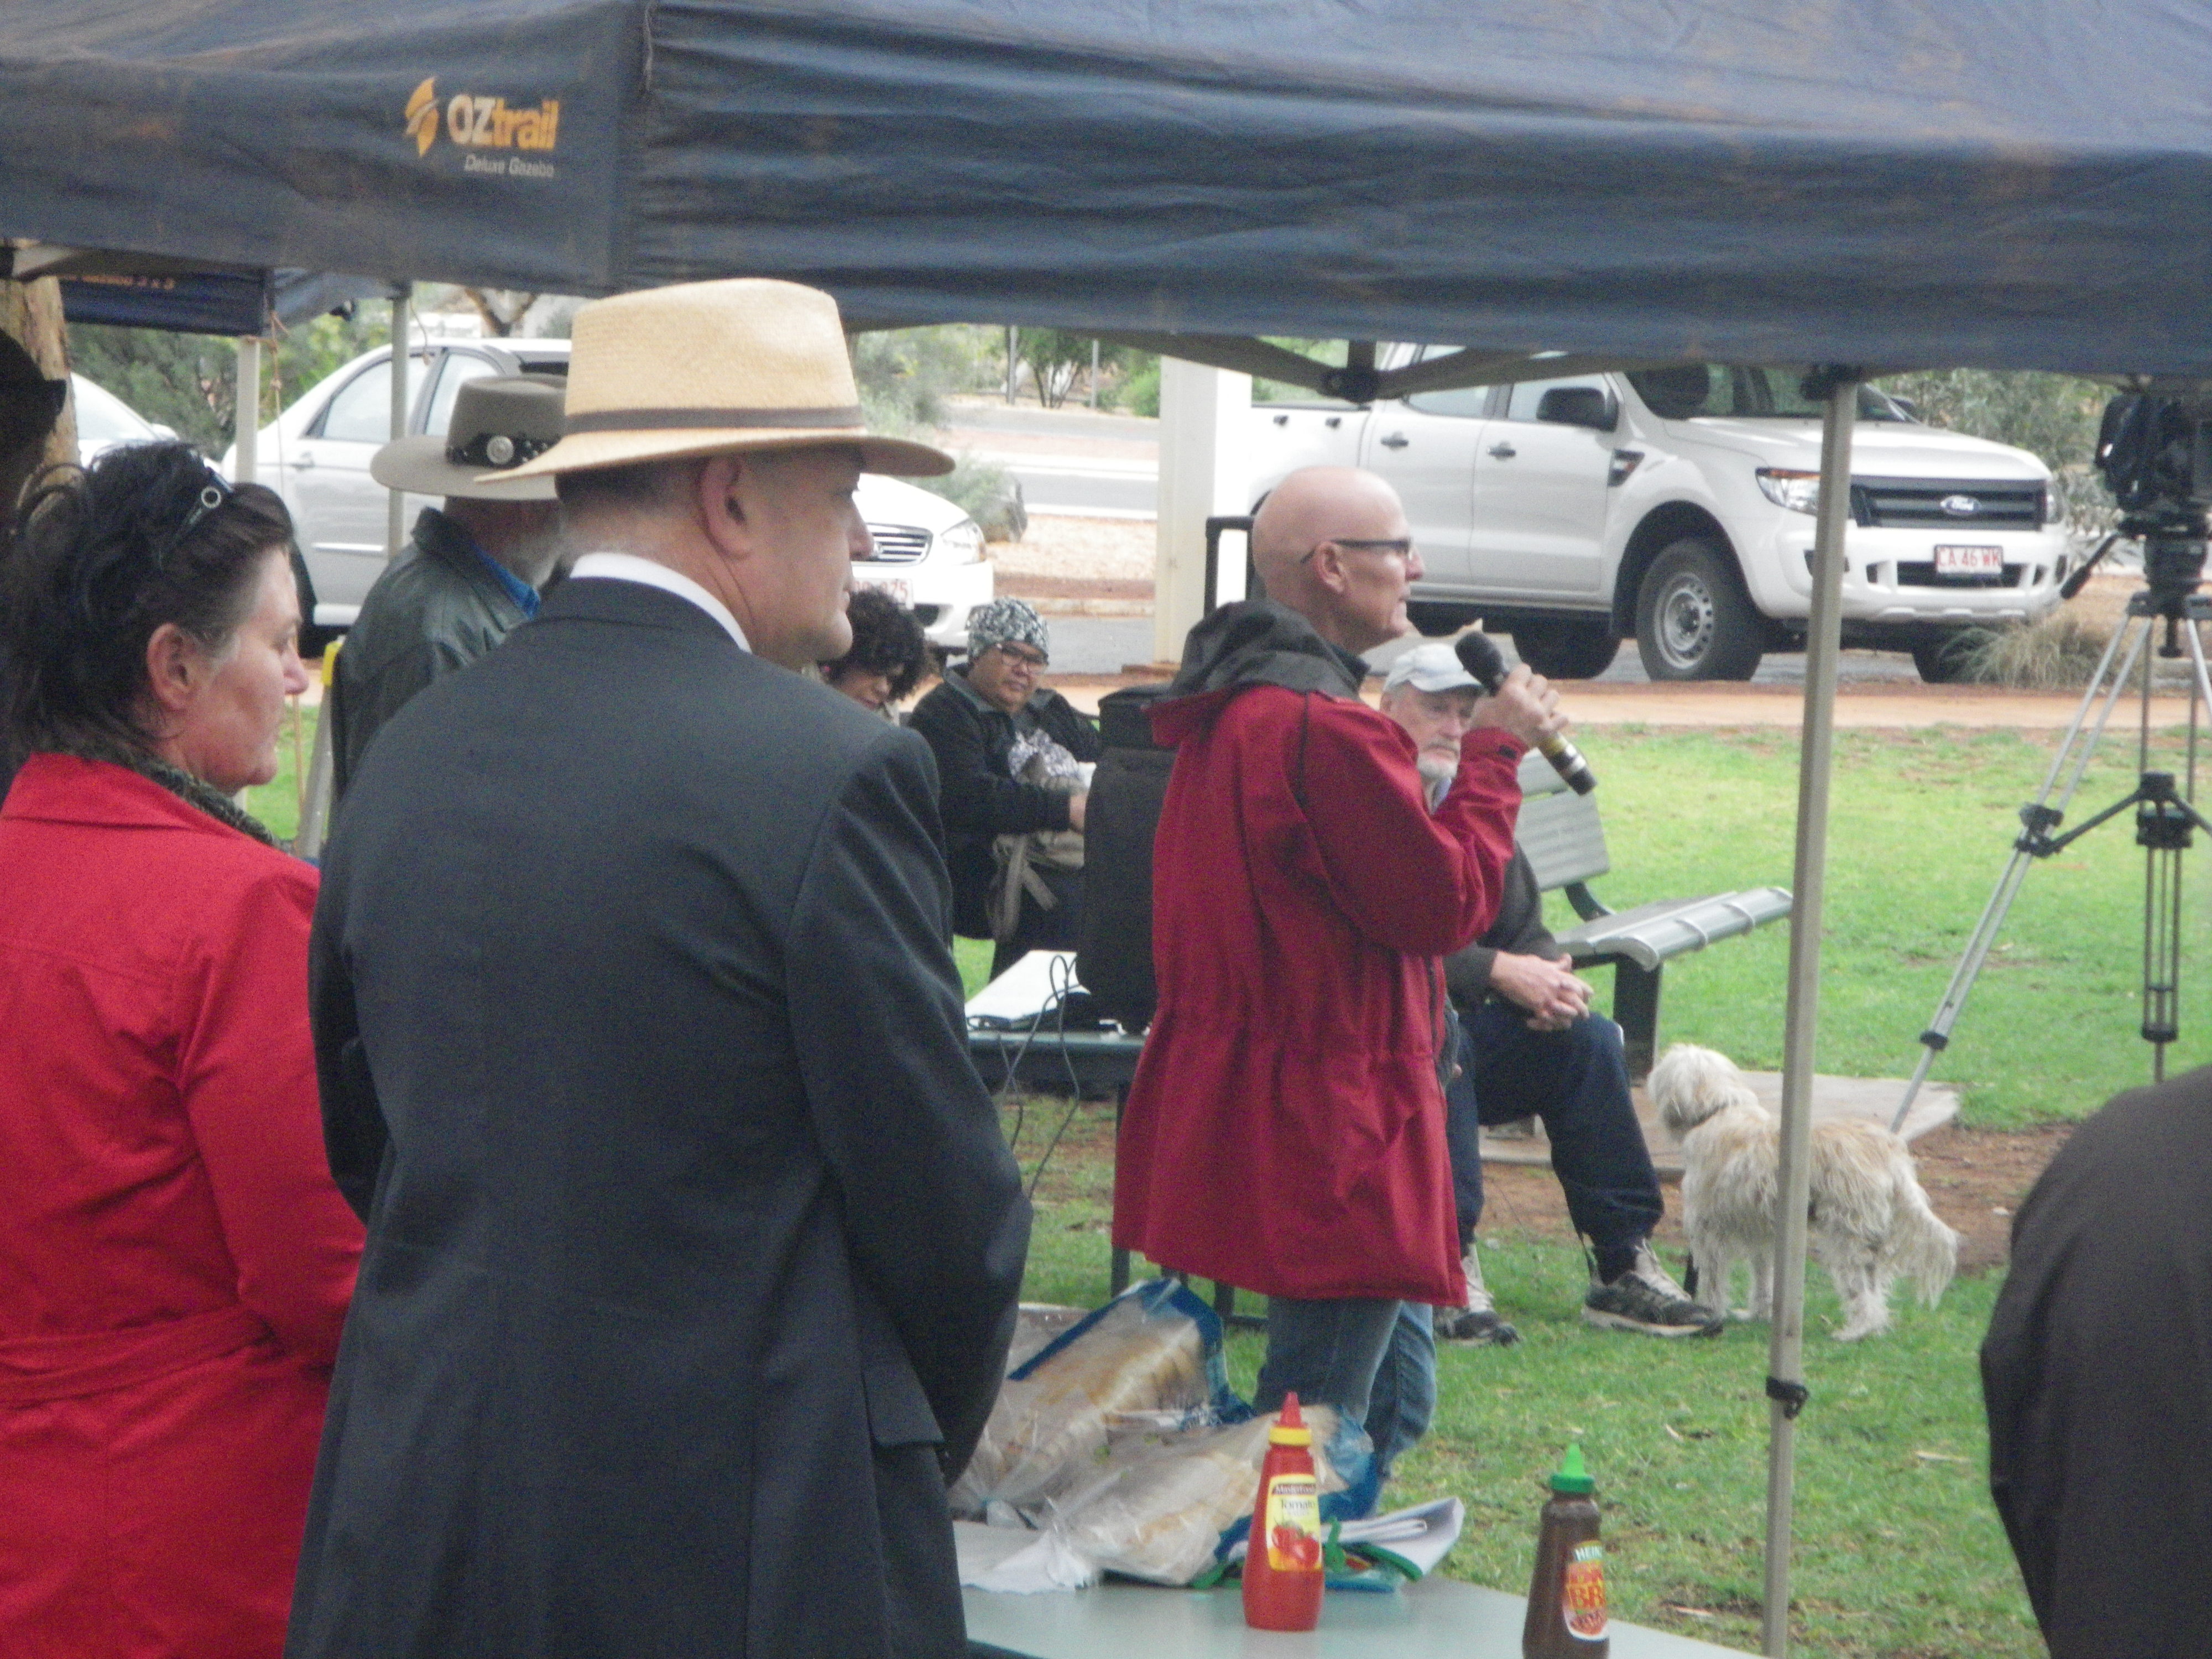 Dr. John Boffa and PAAC supporters including Wuppy the dog